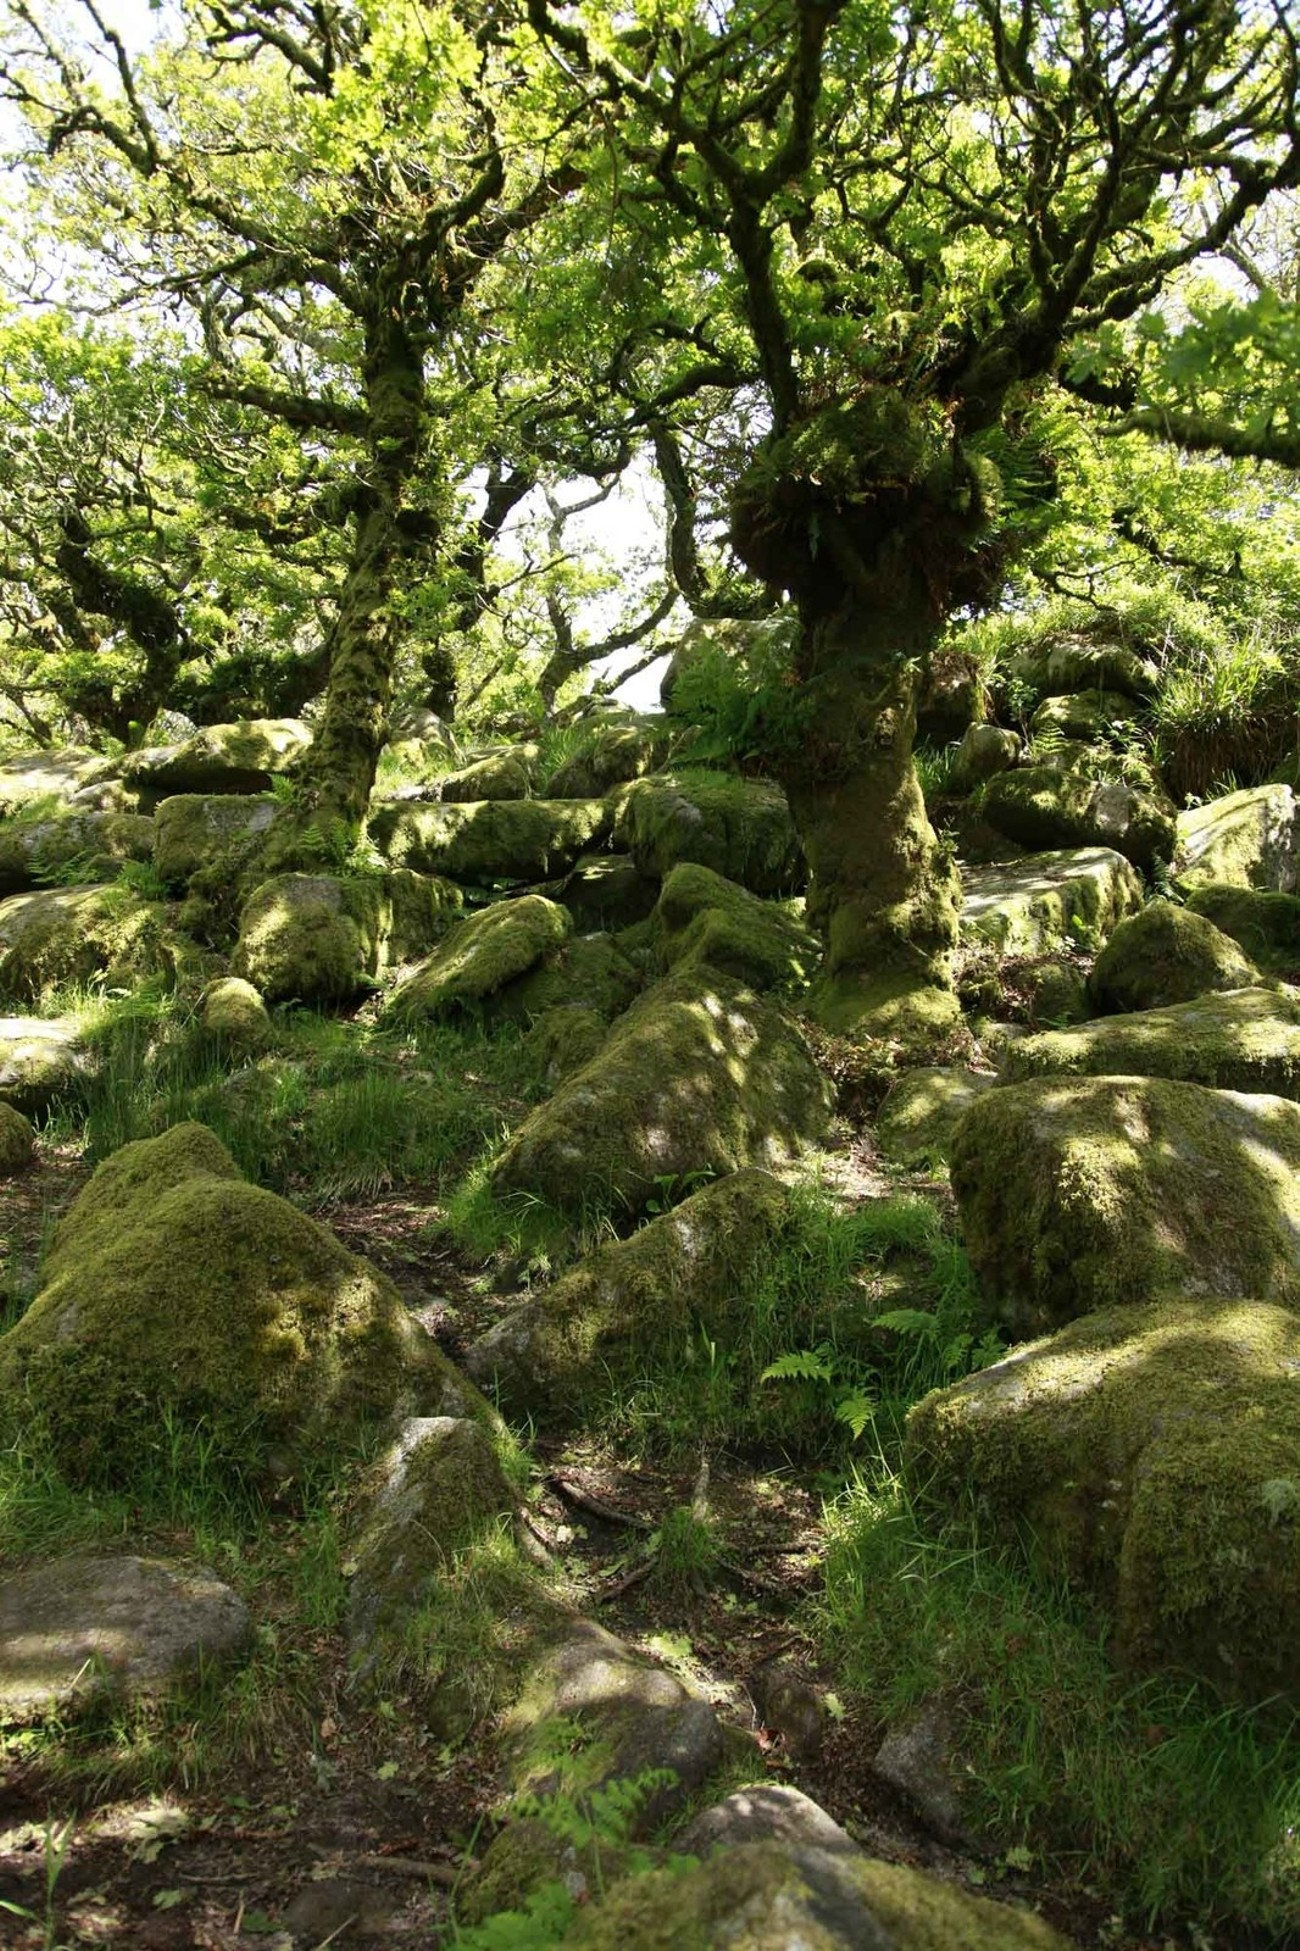 """Wistman's Wood is one of only three remote high-altitude oakwoods on Dartmoor, Devon, England. A beautiful day and a long held ambition to visit the Wistman's Wood was covered!! This is a STUNNING place to visit and just quiet, peaceful and kind of """"spooky""""! Some of the trees seem to have a real look of a being frozen in time! Wistman's Wood lies at an altitude of 380–410 metres in the valley of the West Dart River near Two Bridges, [1] at grid reference SX612774. The source of the Devonport Leat, at a weir on the West Dart River, is just north of the wood."""